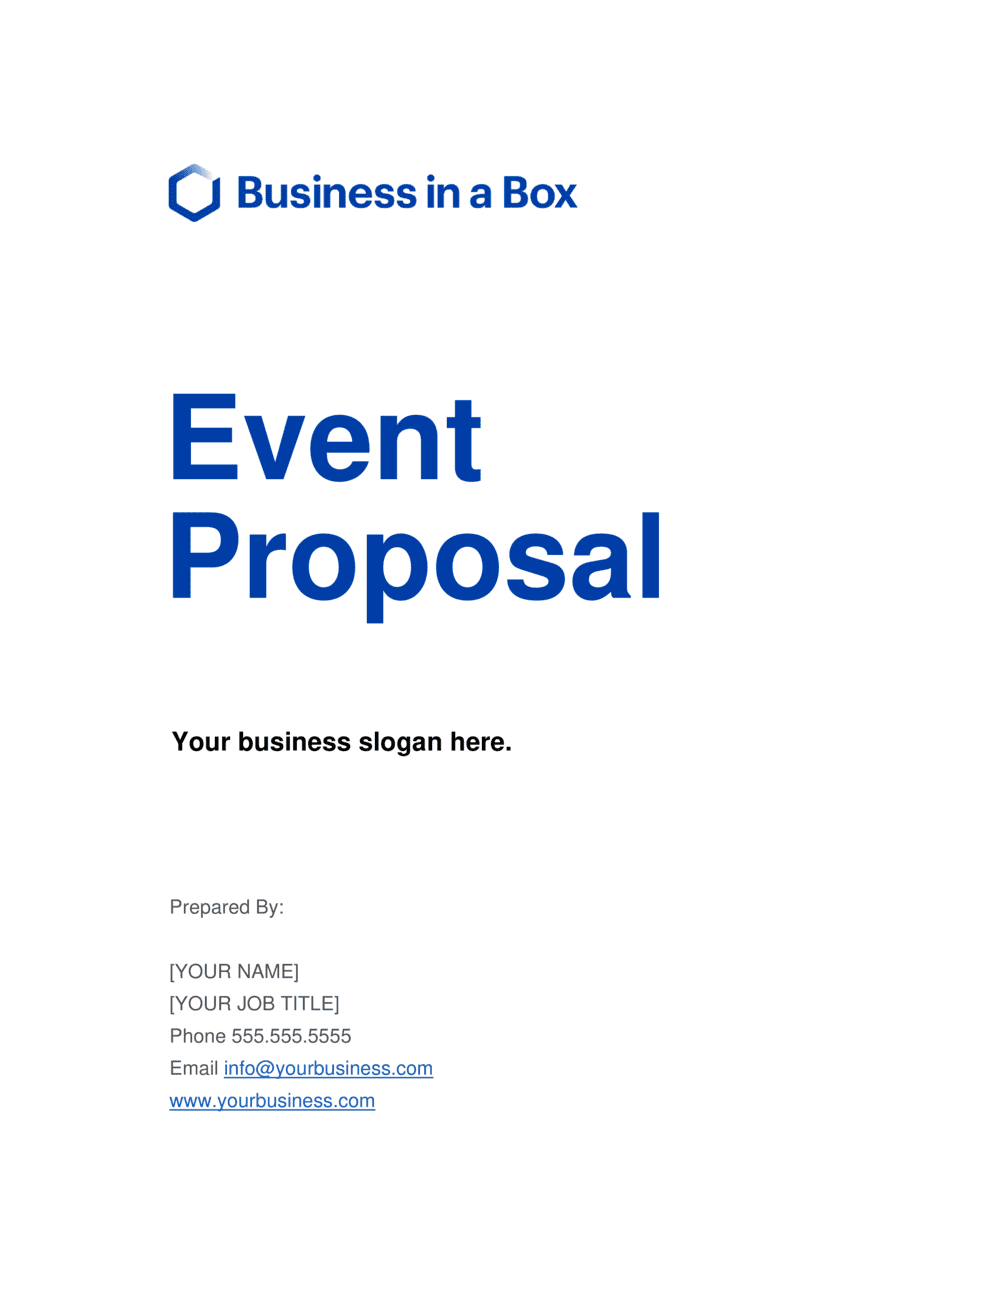 Business-in-a-Box's Event Proposal Template